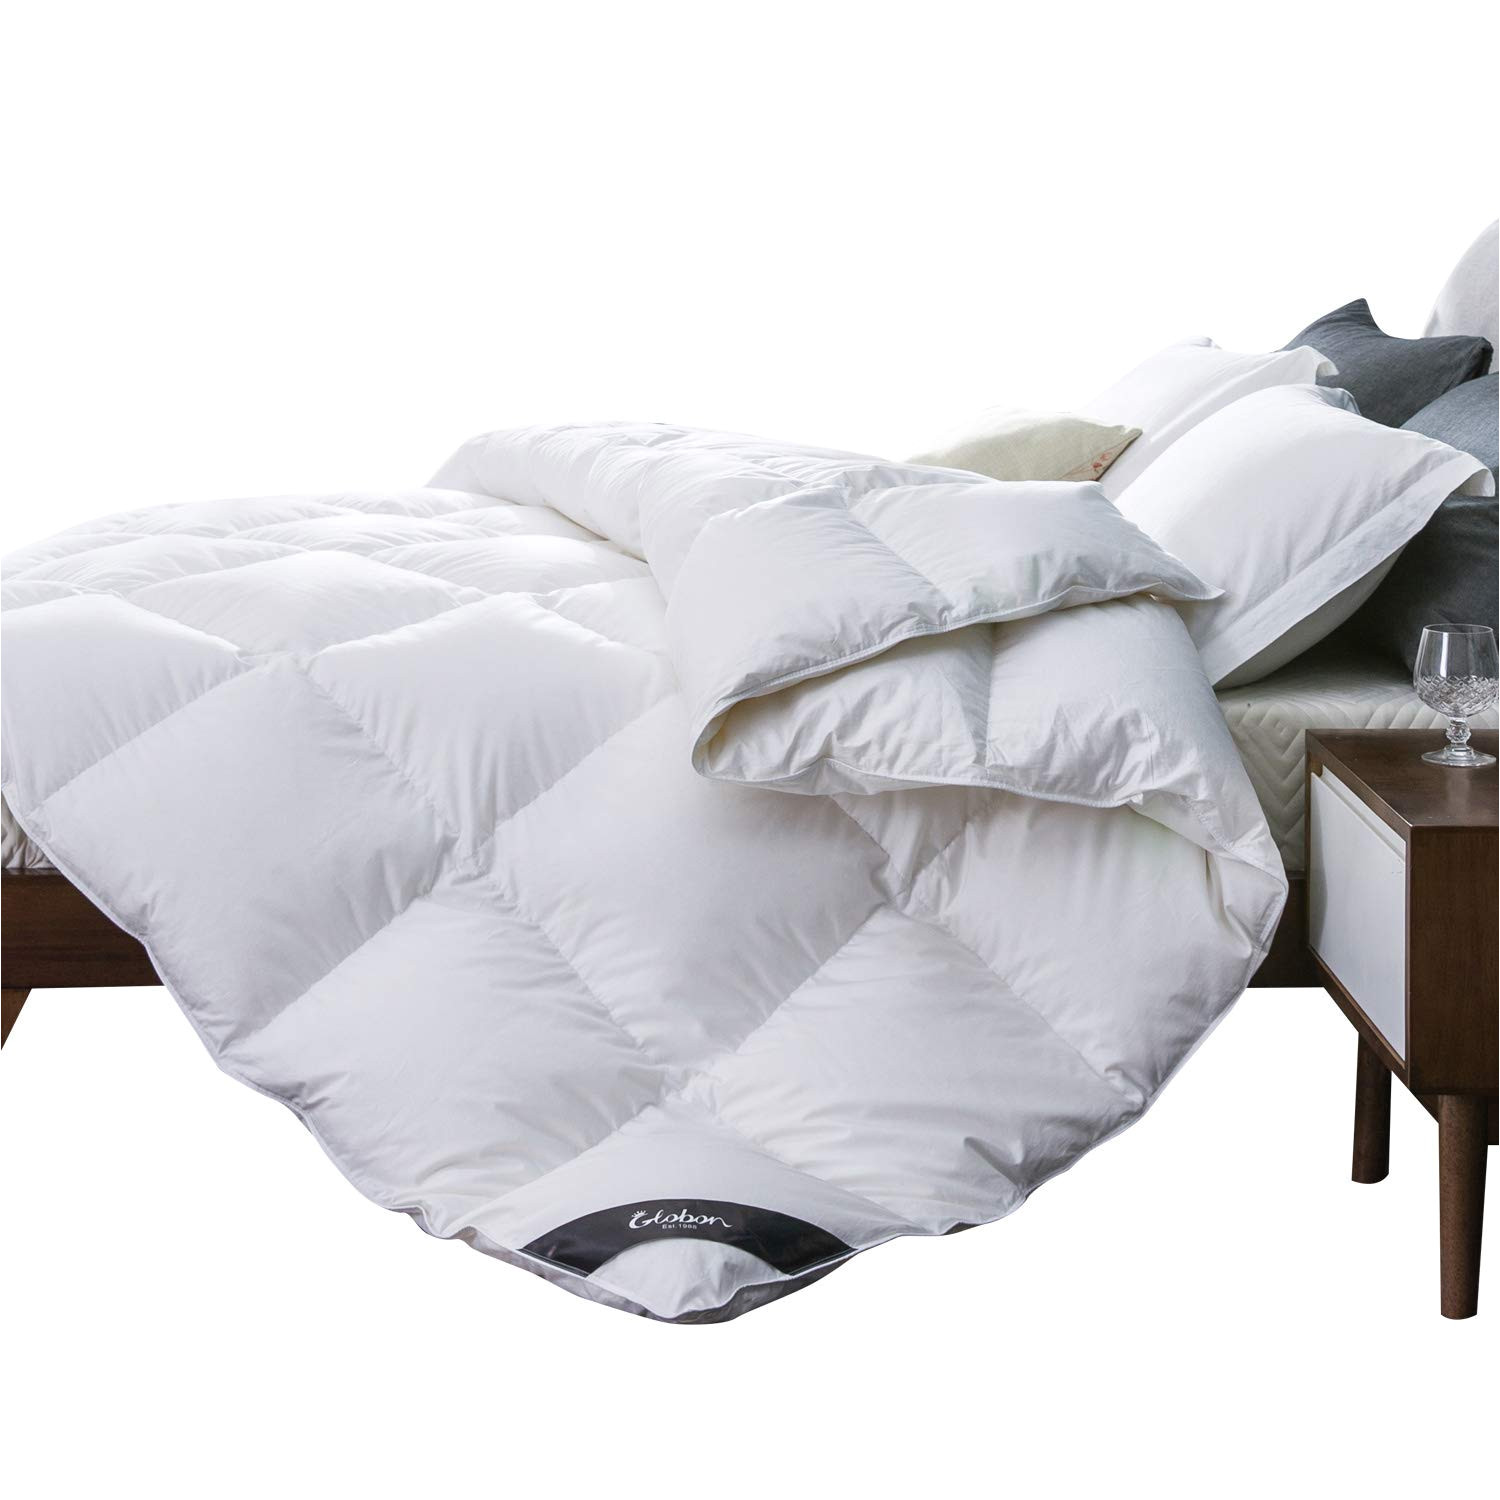 white goose down comforter queen medium warmth all season 400 thread count hypoallergenic 100 cotton shell with corner tabs 25oz 700 fill power